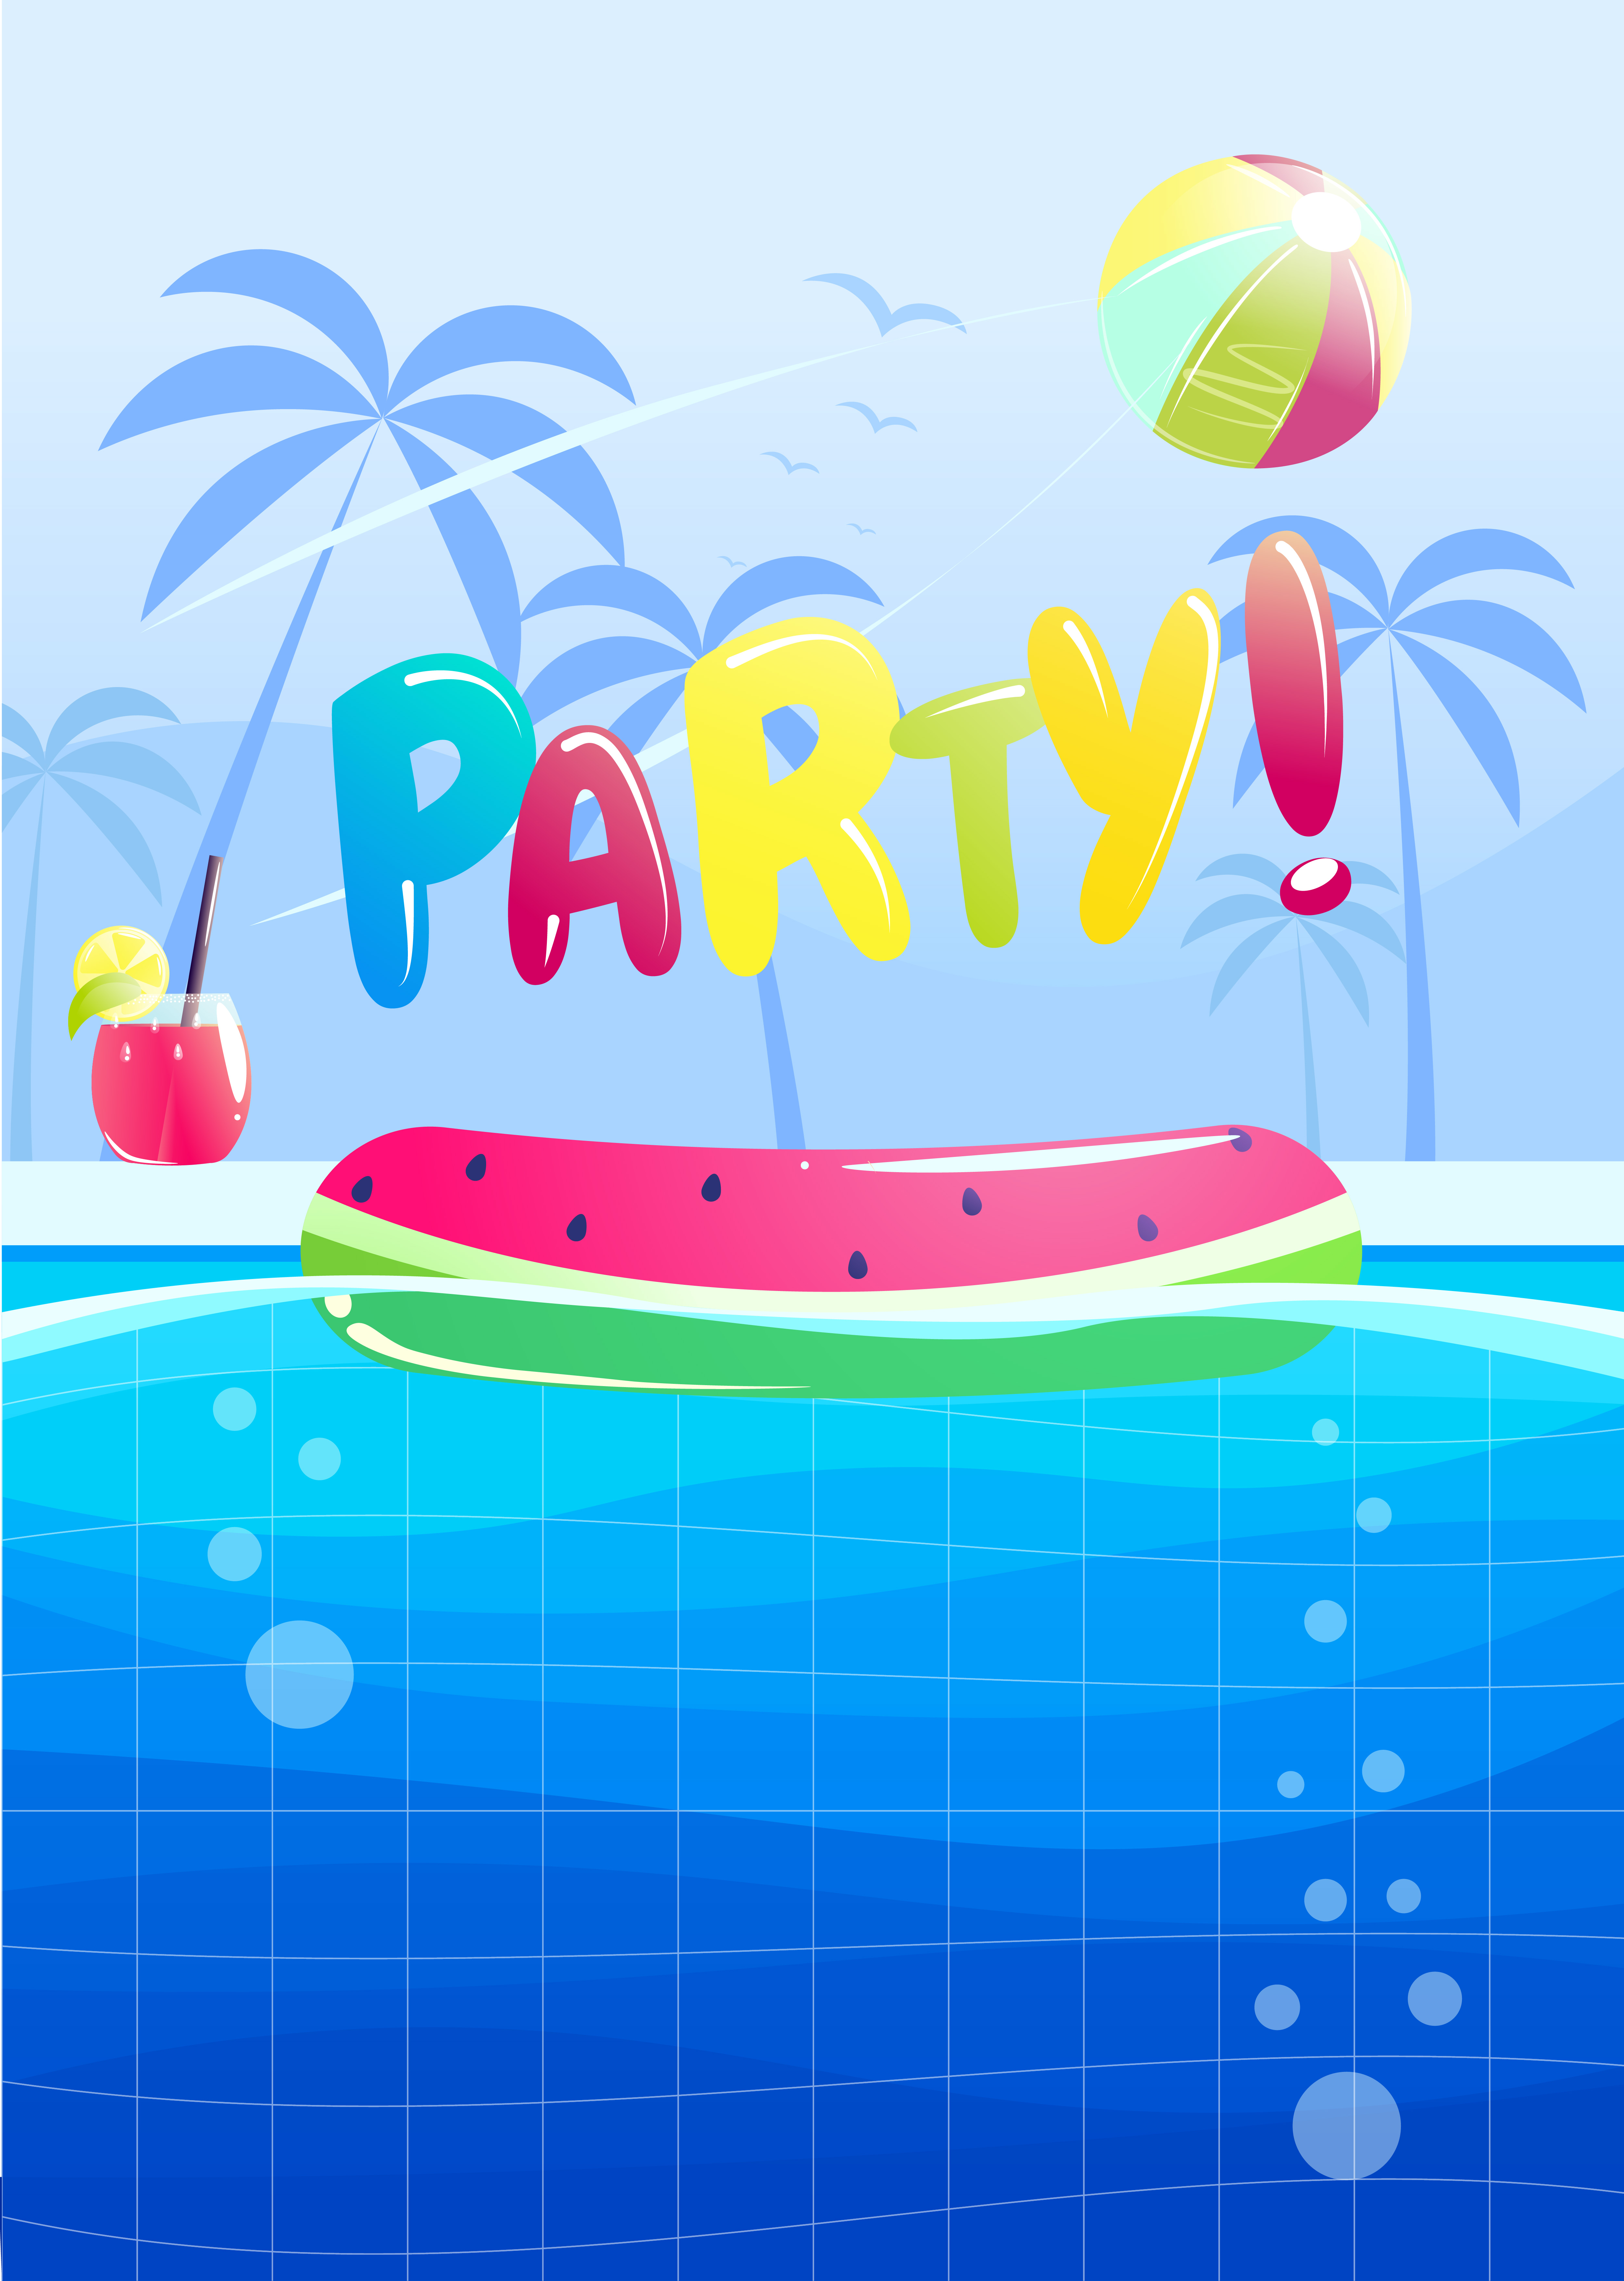 hello summer party banner design  swimming pool in the